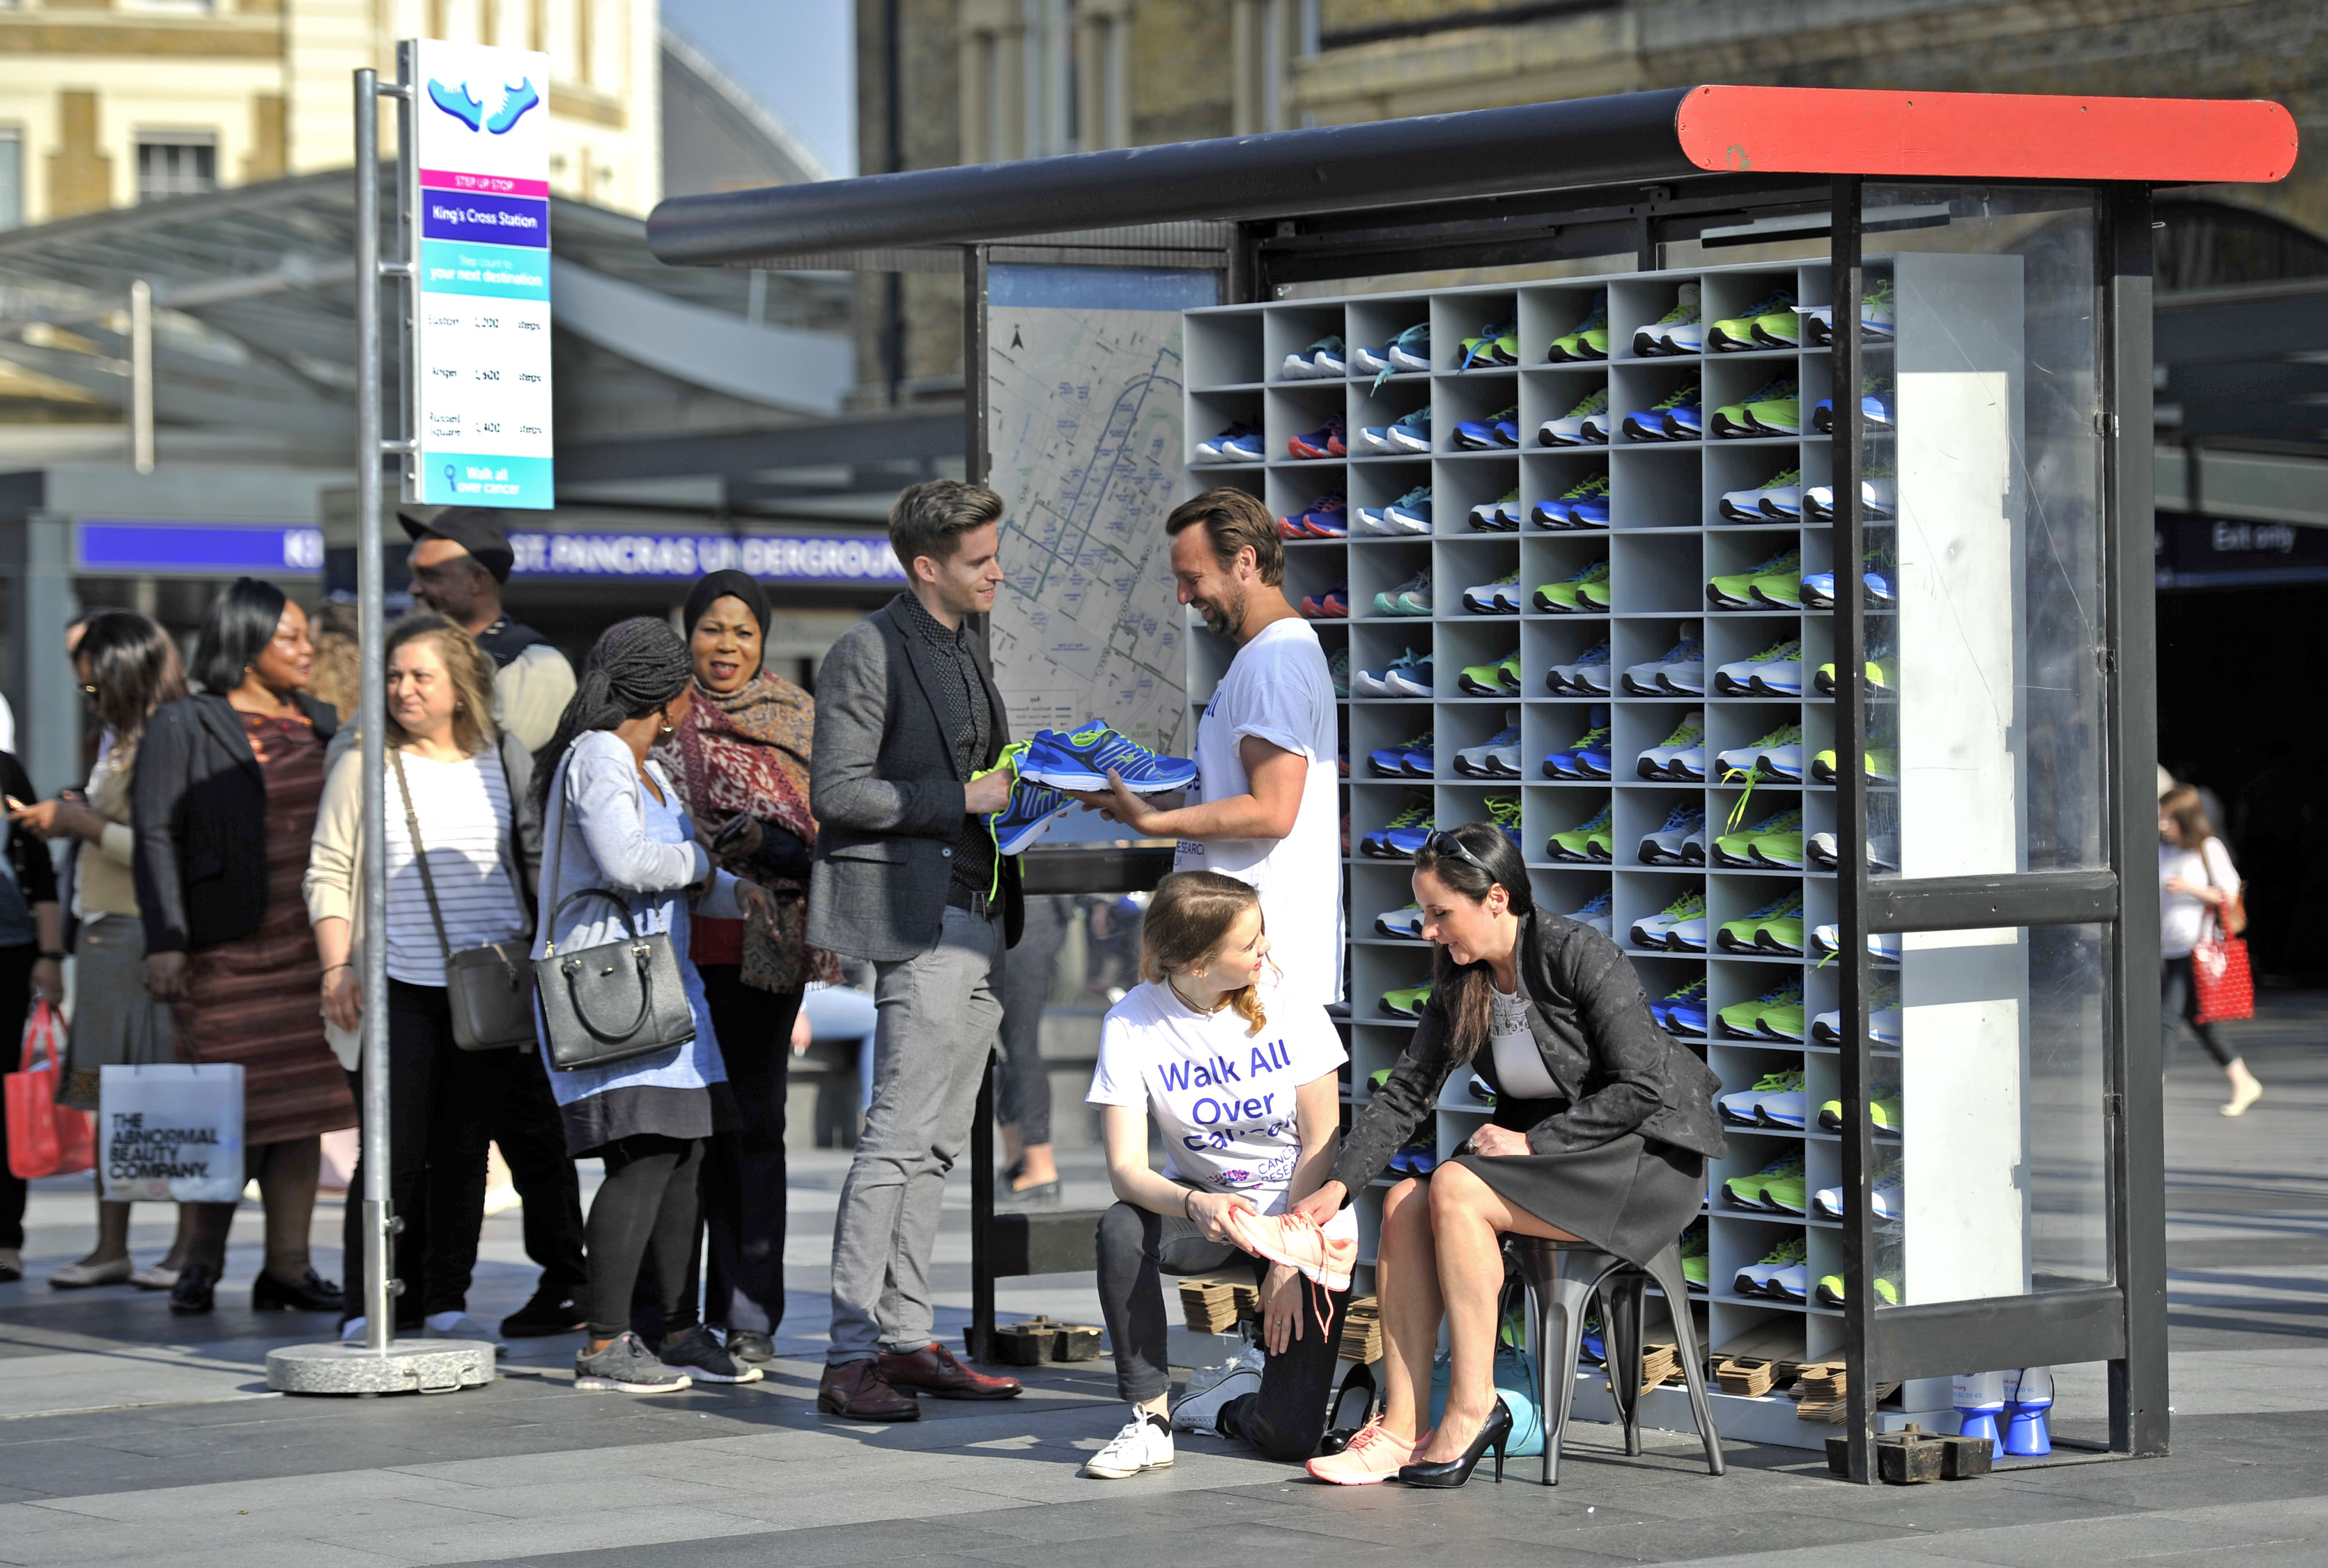 CRUK Cancer Research Walk All Over Cancer PR Stunt Kings Cross Bus stop Bespoke Installation Experiential event Campaign